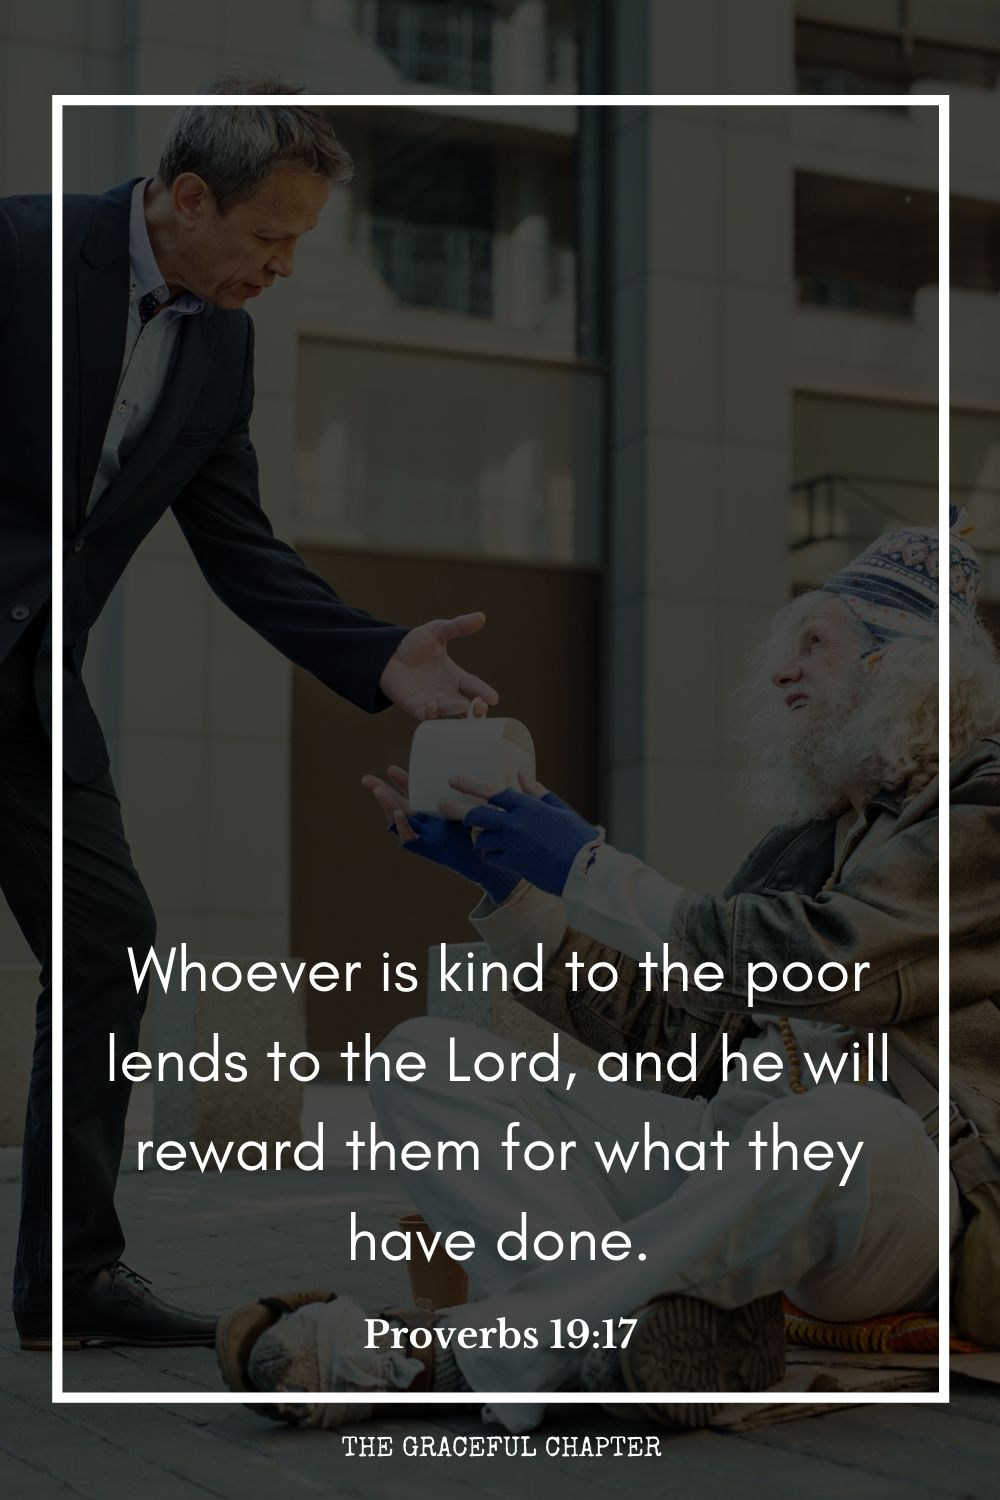 Whoever is kind to the poor lends to the Lord, and he will reward them for what they have done. Proverbs 19:17